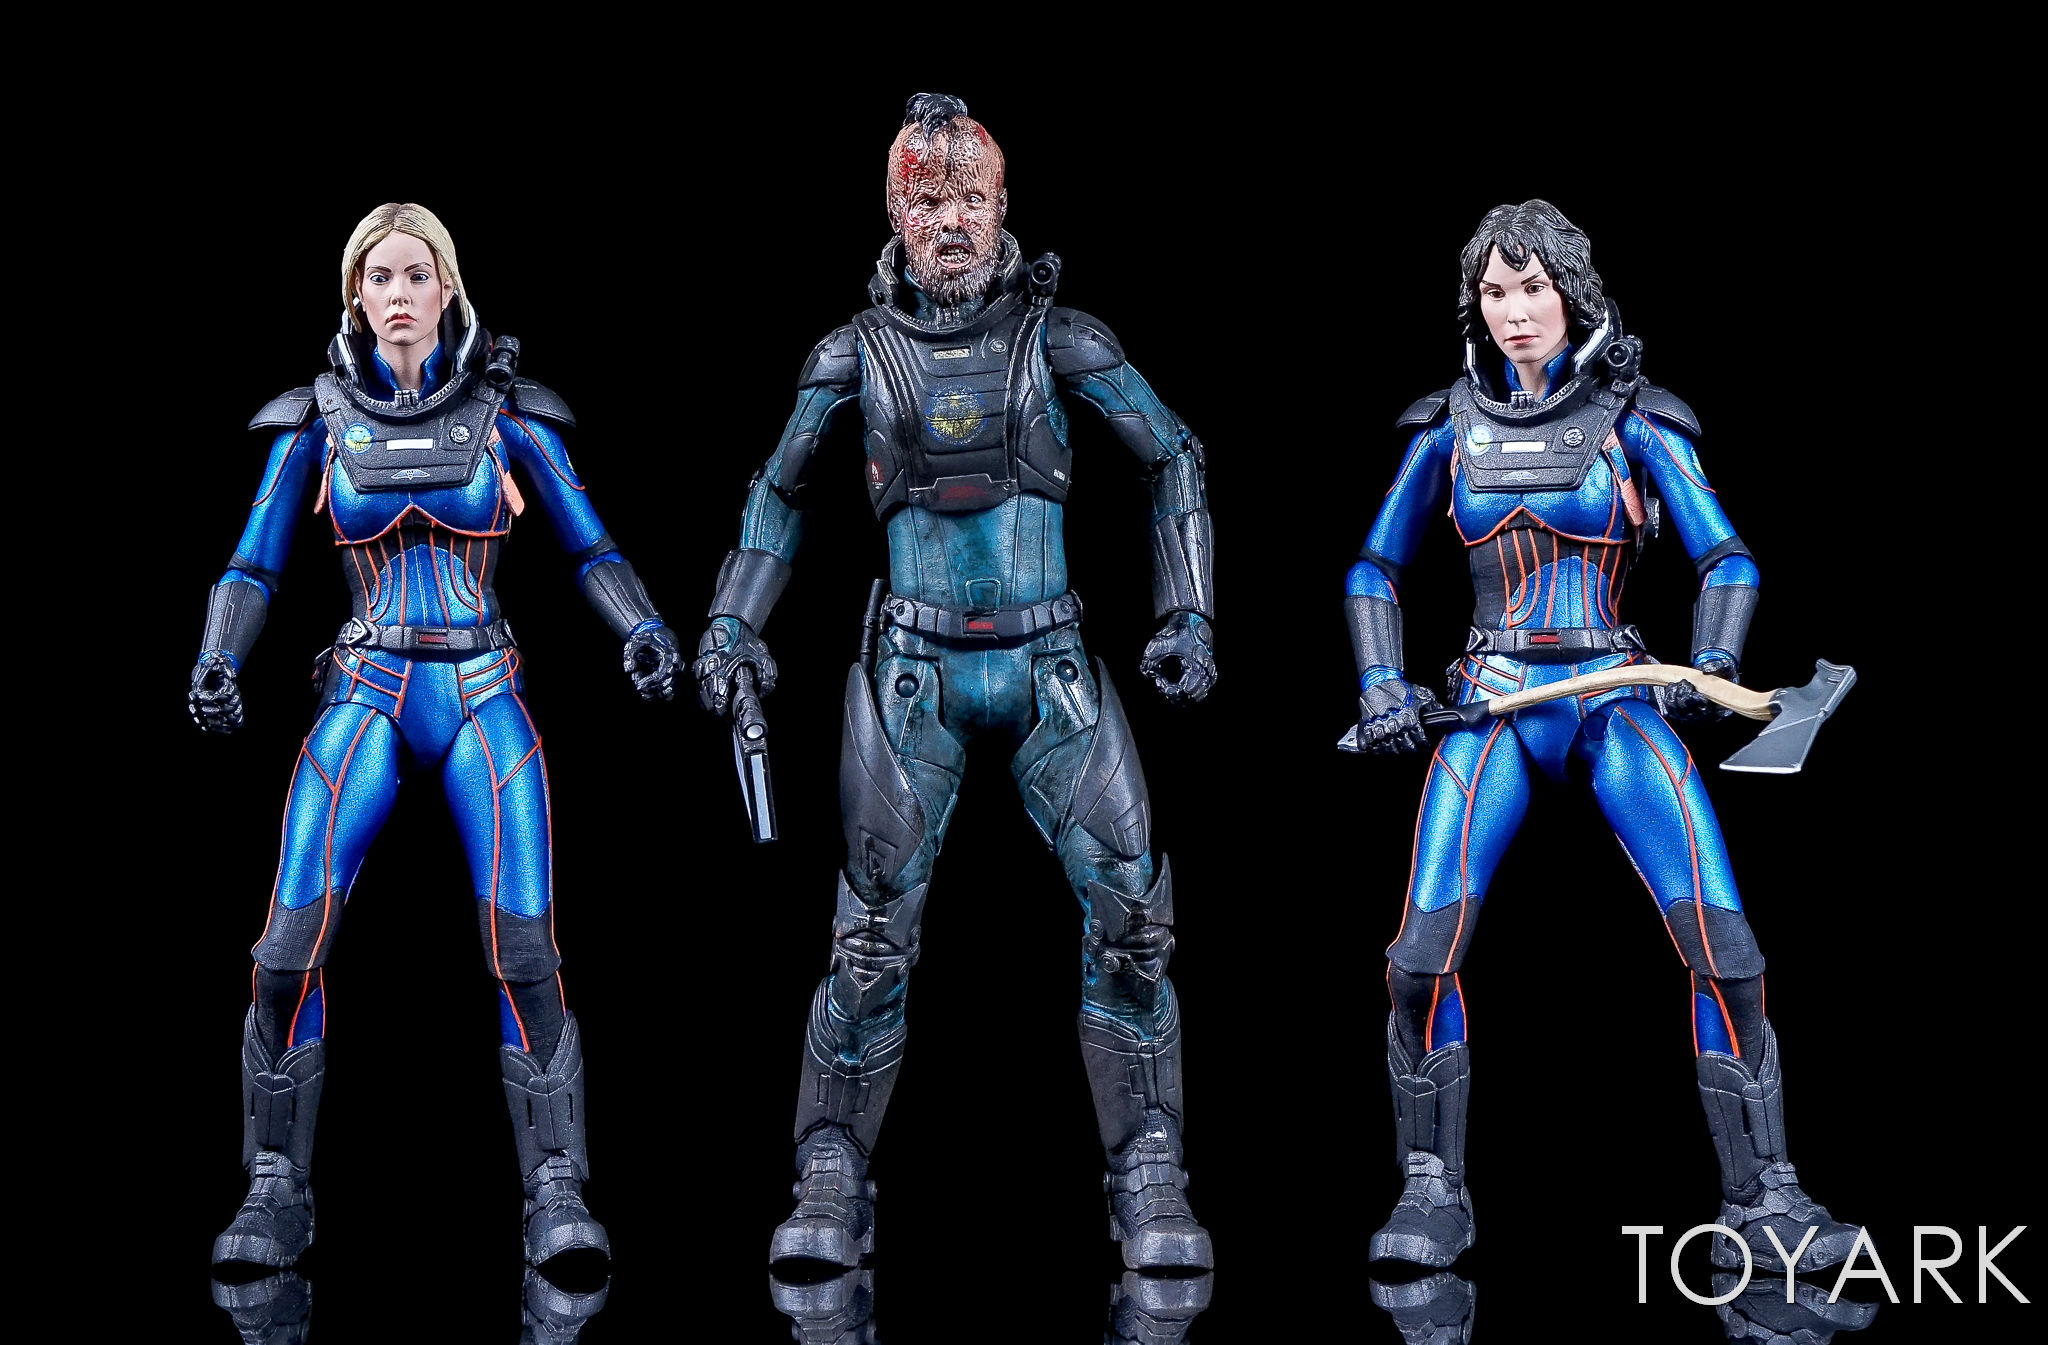 http://news.toyark.com/wp-content/uploads/sites/4/2017/06/NECA-Prometheus-Lost-Wave-054.jpg